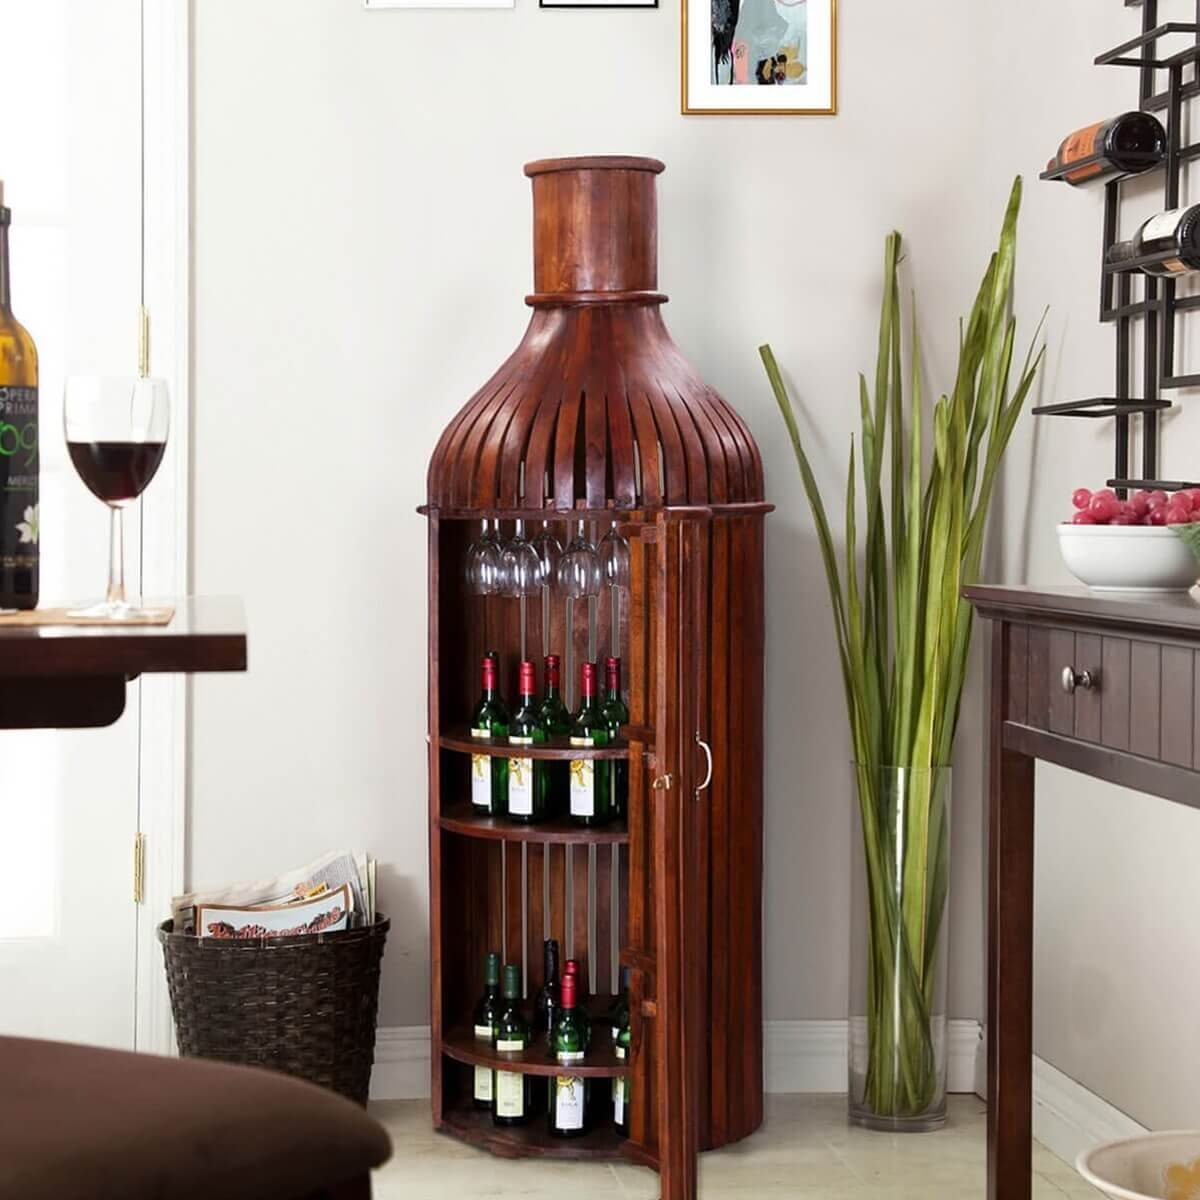 36ce32e10a Bordeaux Handcrafted Solid Wood Wine Bottle Storage Bar Cabinet. Hover to  zoom